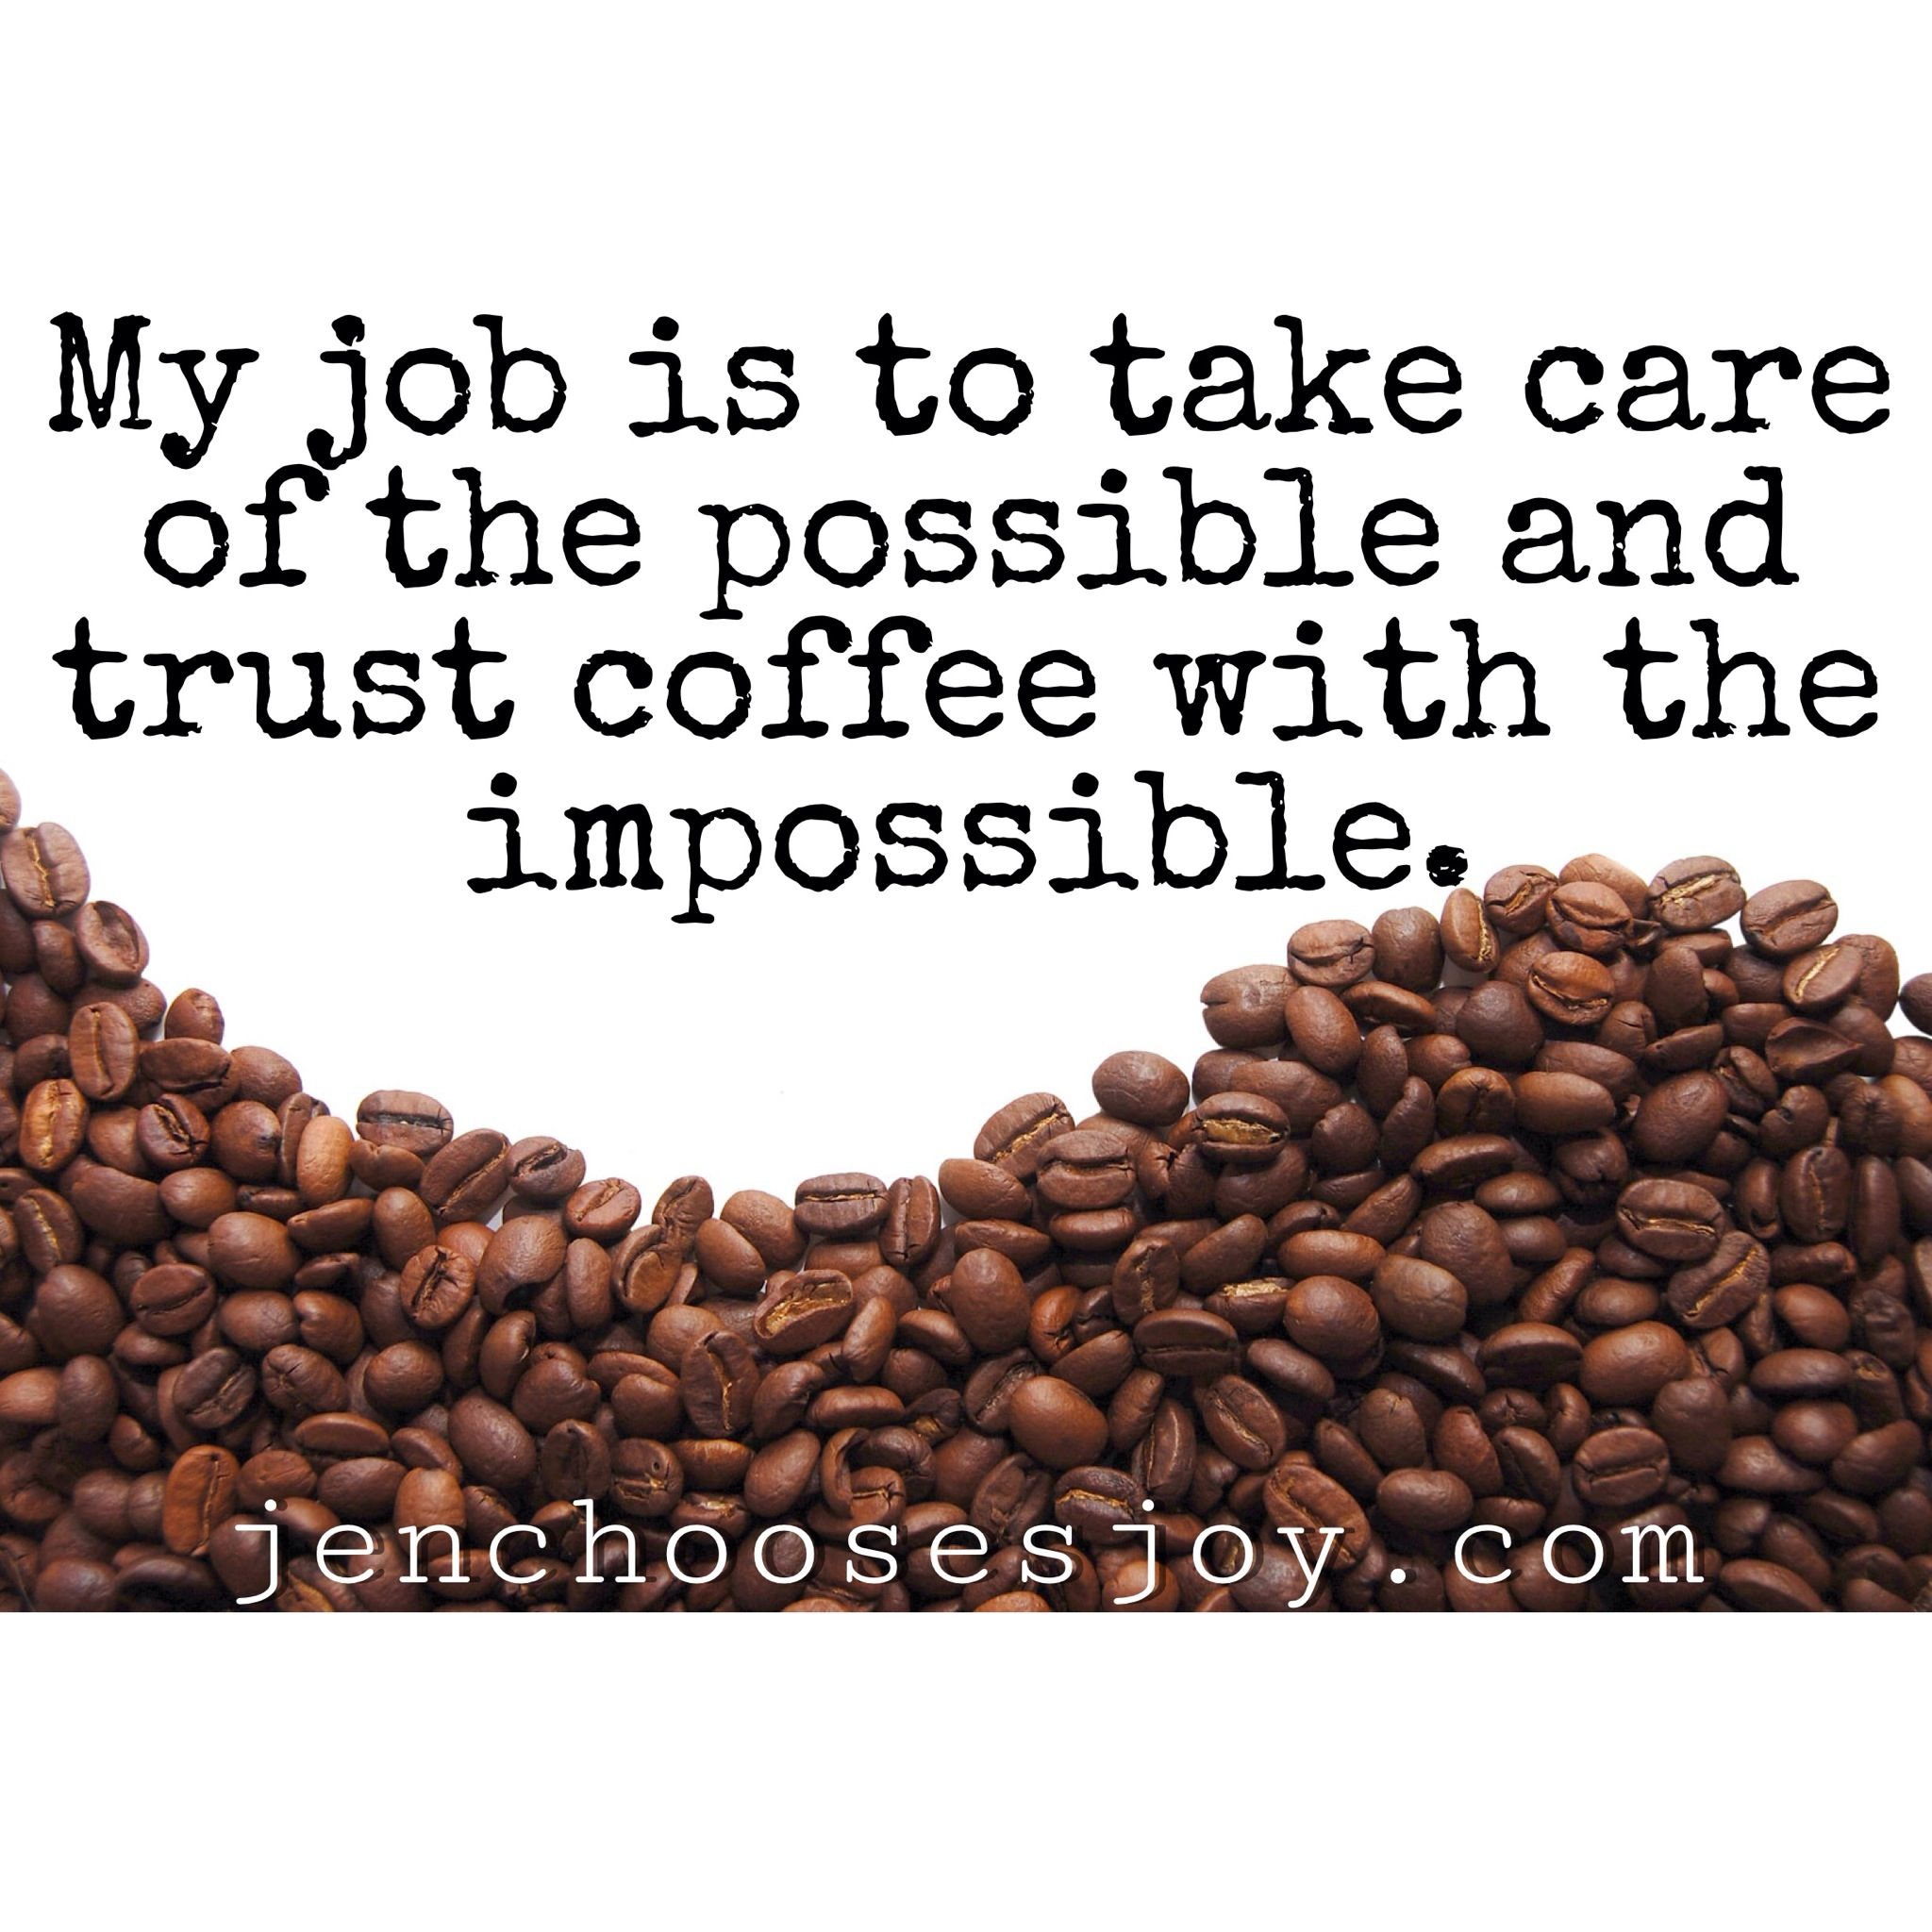 My job is to take care of the possible and trust coffee with the impossible!